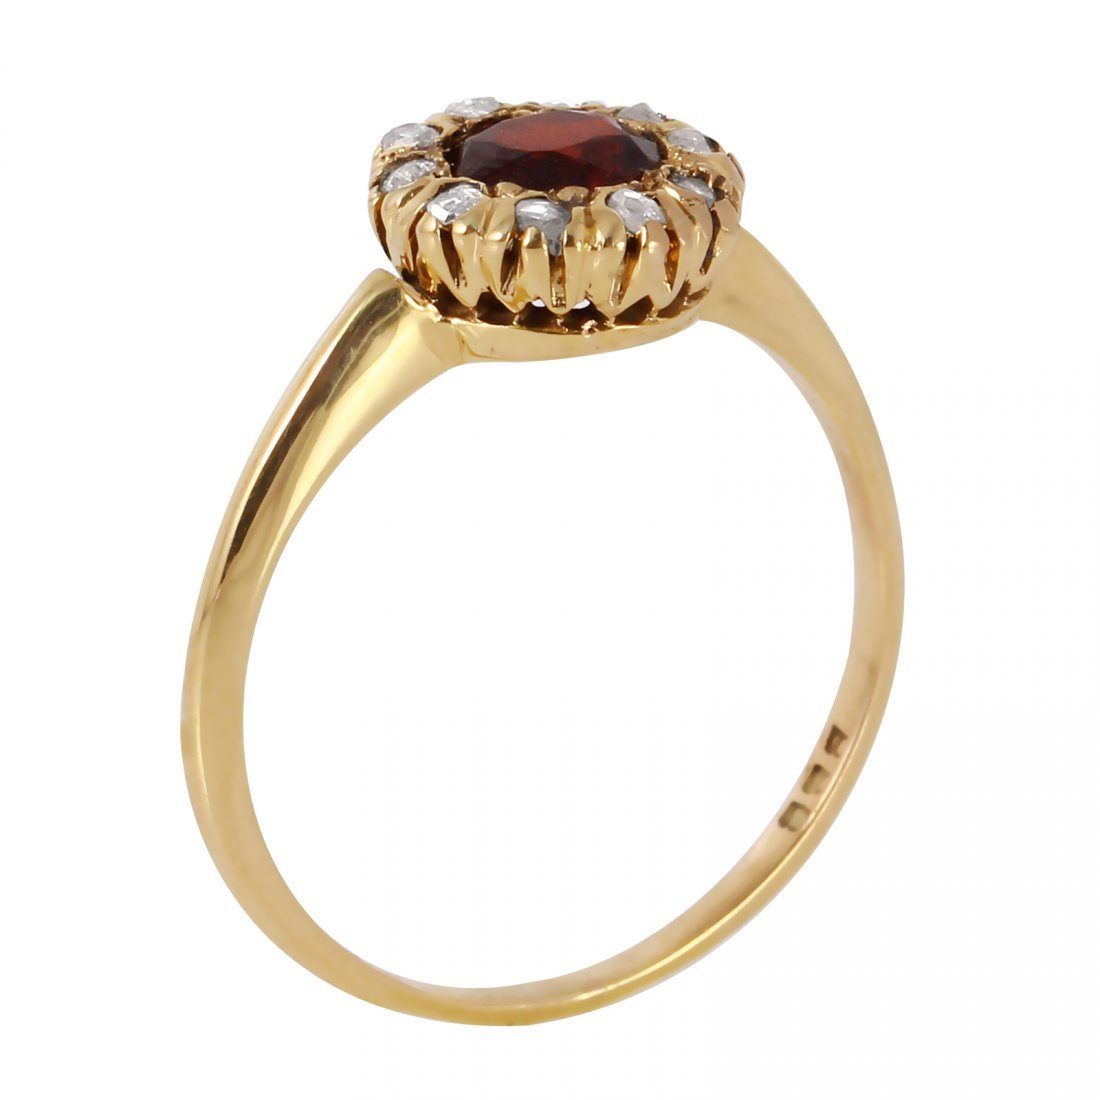 10K Yellow Gold Garnet Diamond Ring - 2